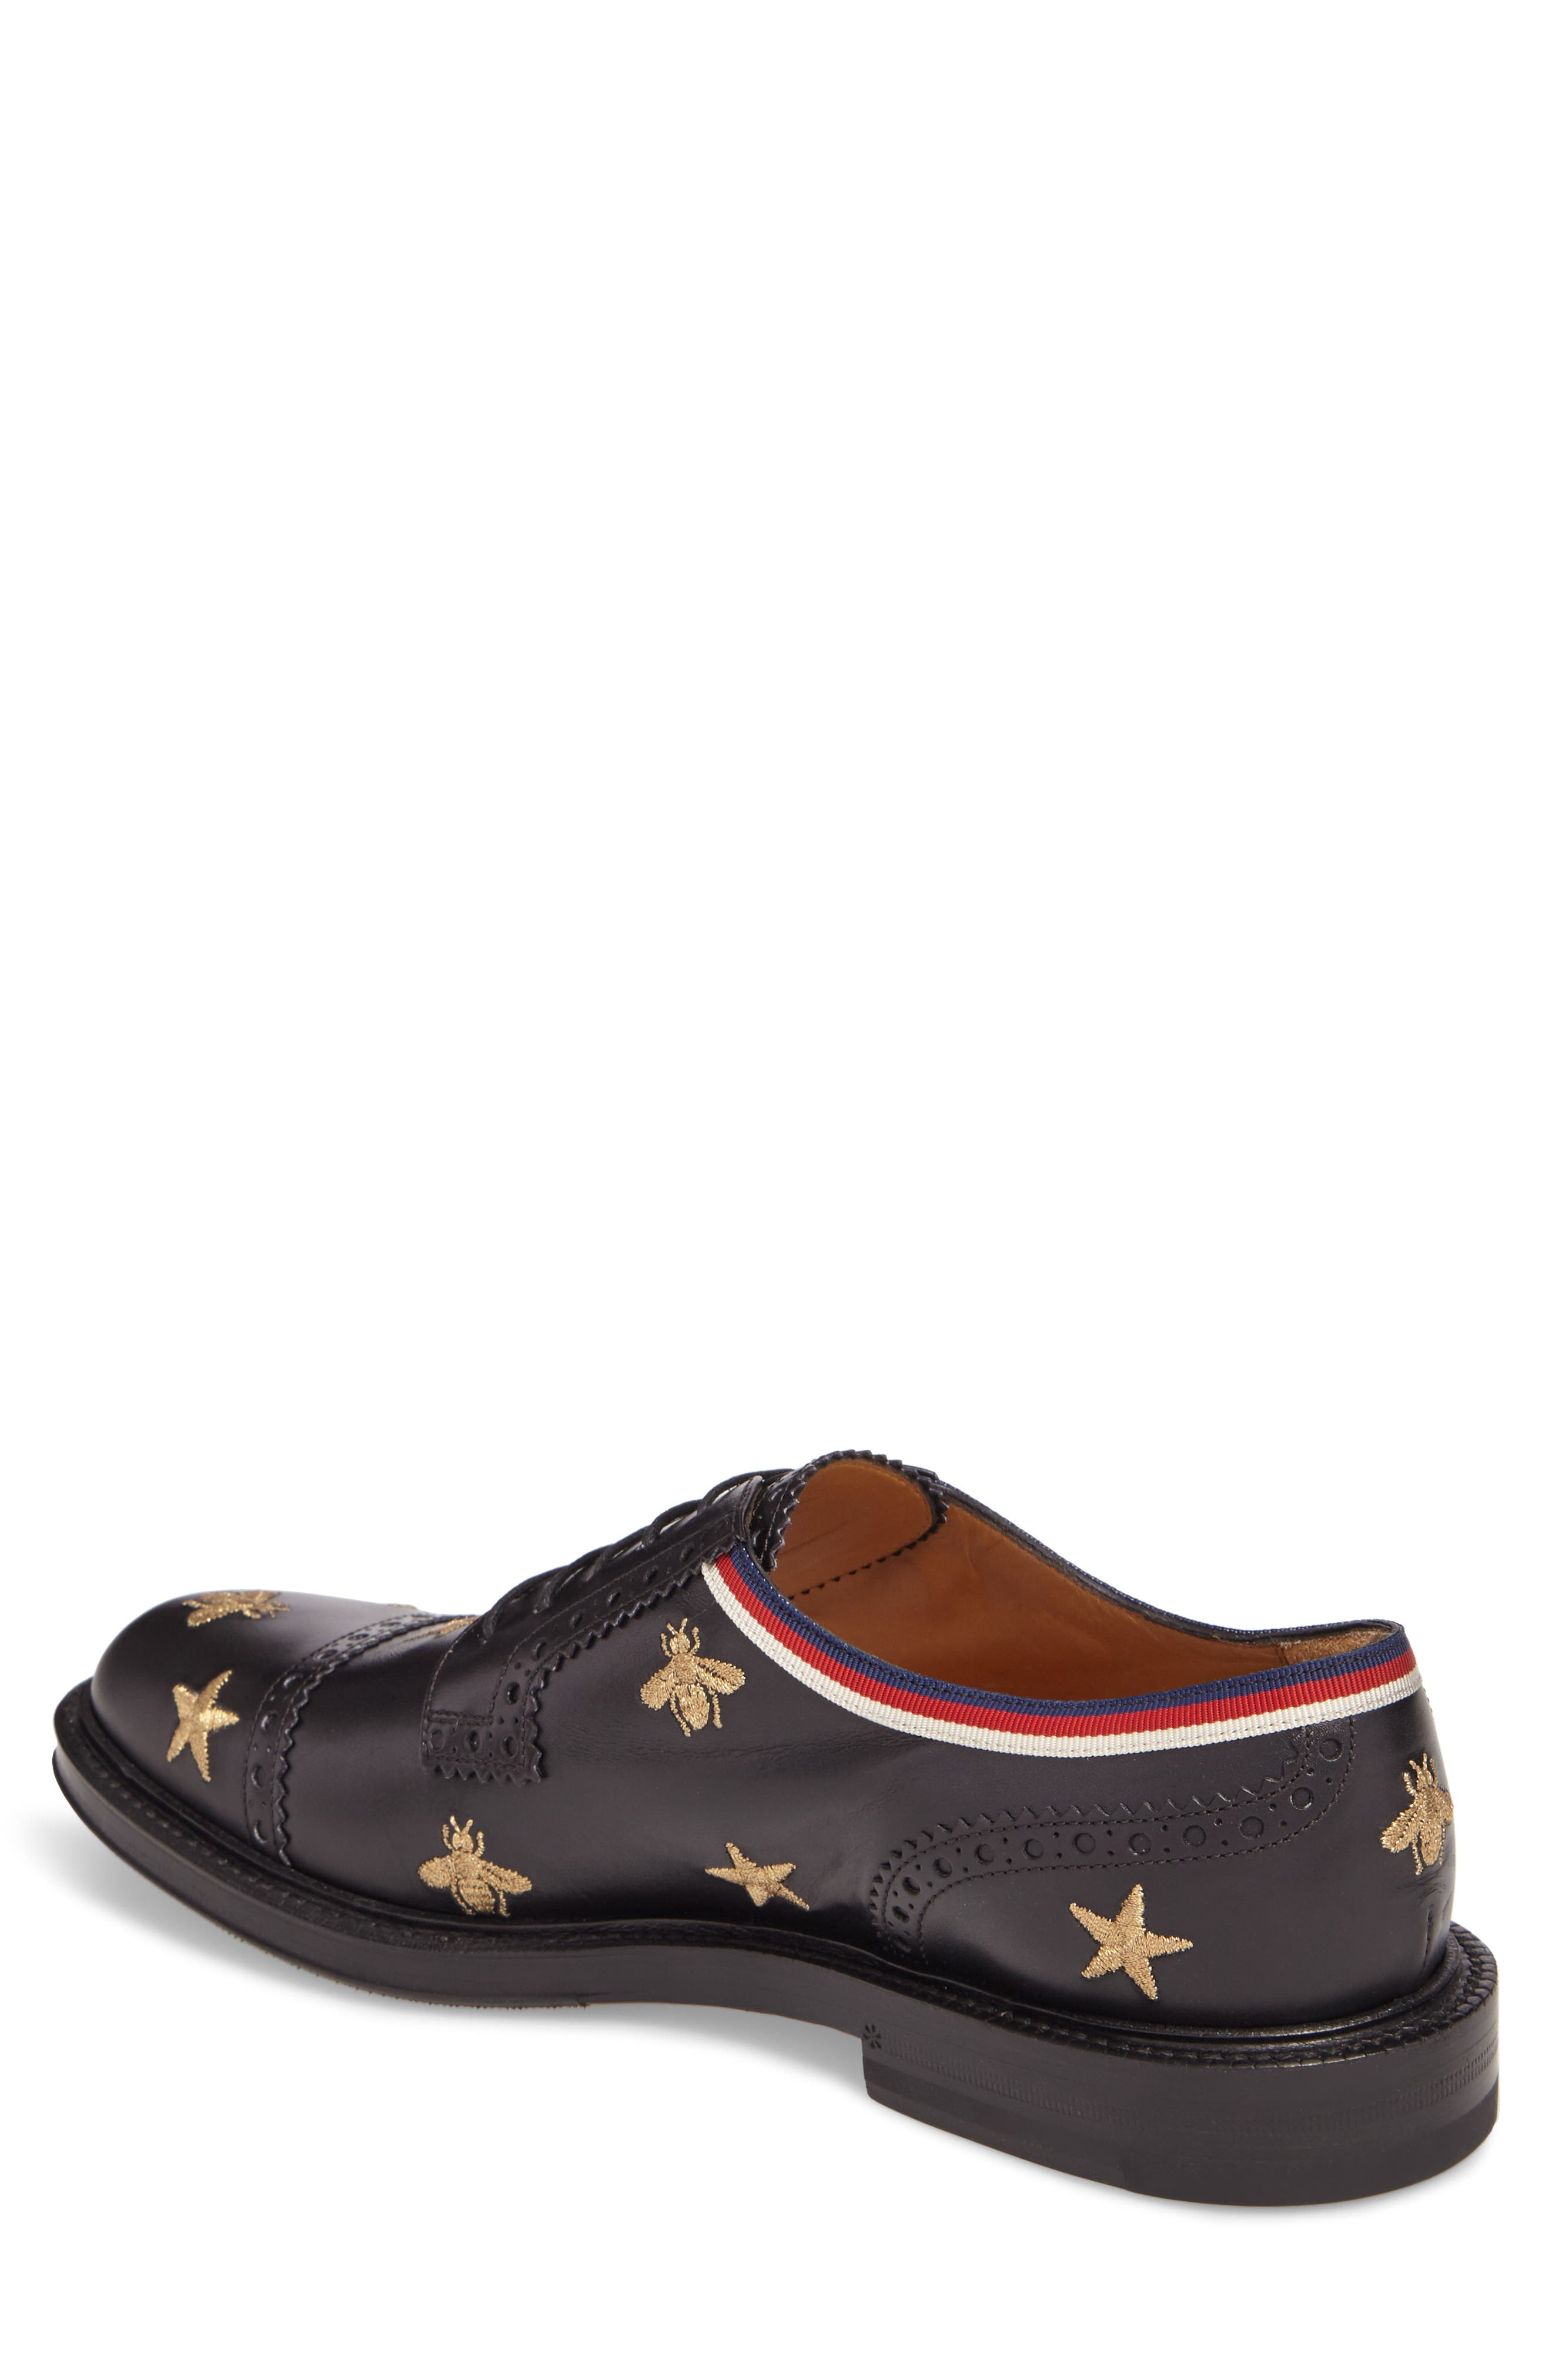 Embroidered Leather Brogue Shoe,                             Alternate thumbnail 2, color,                             Black